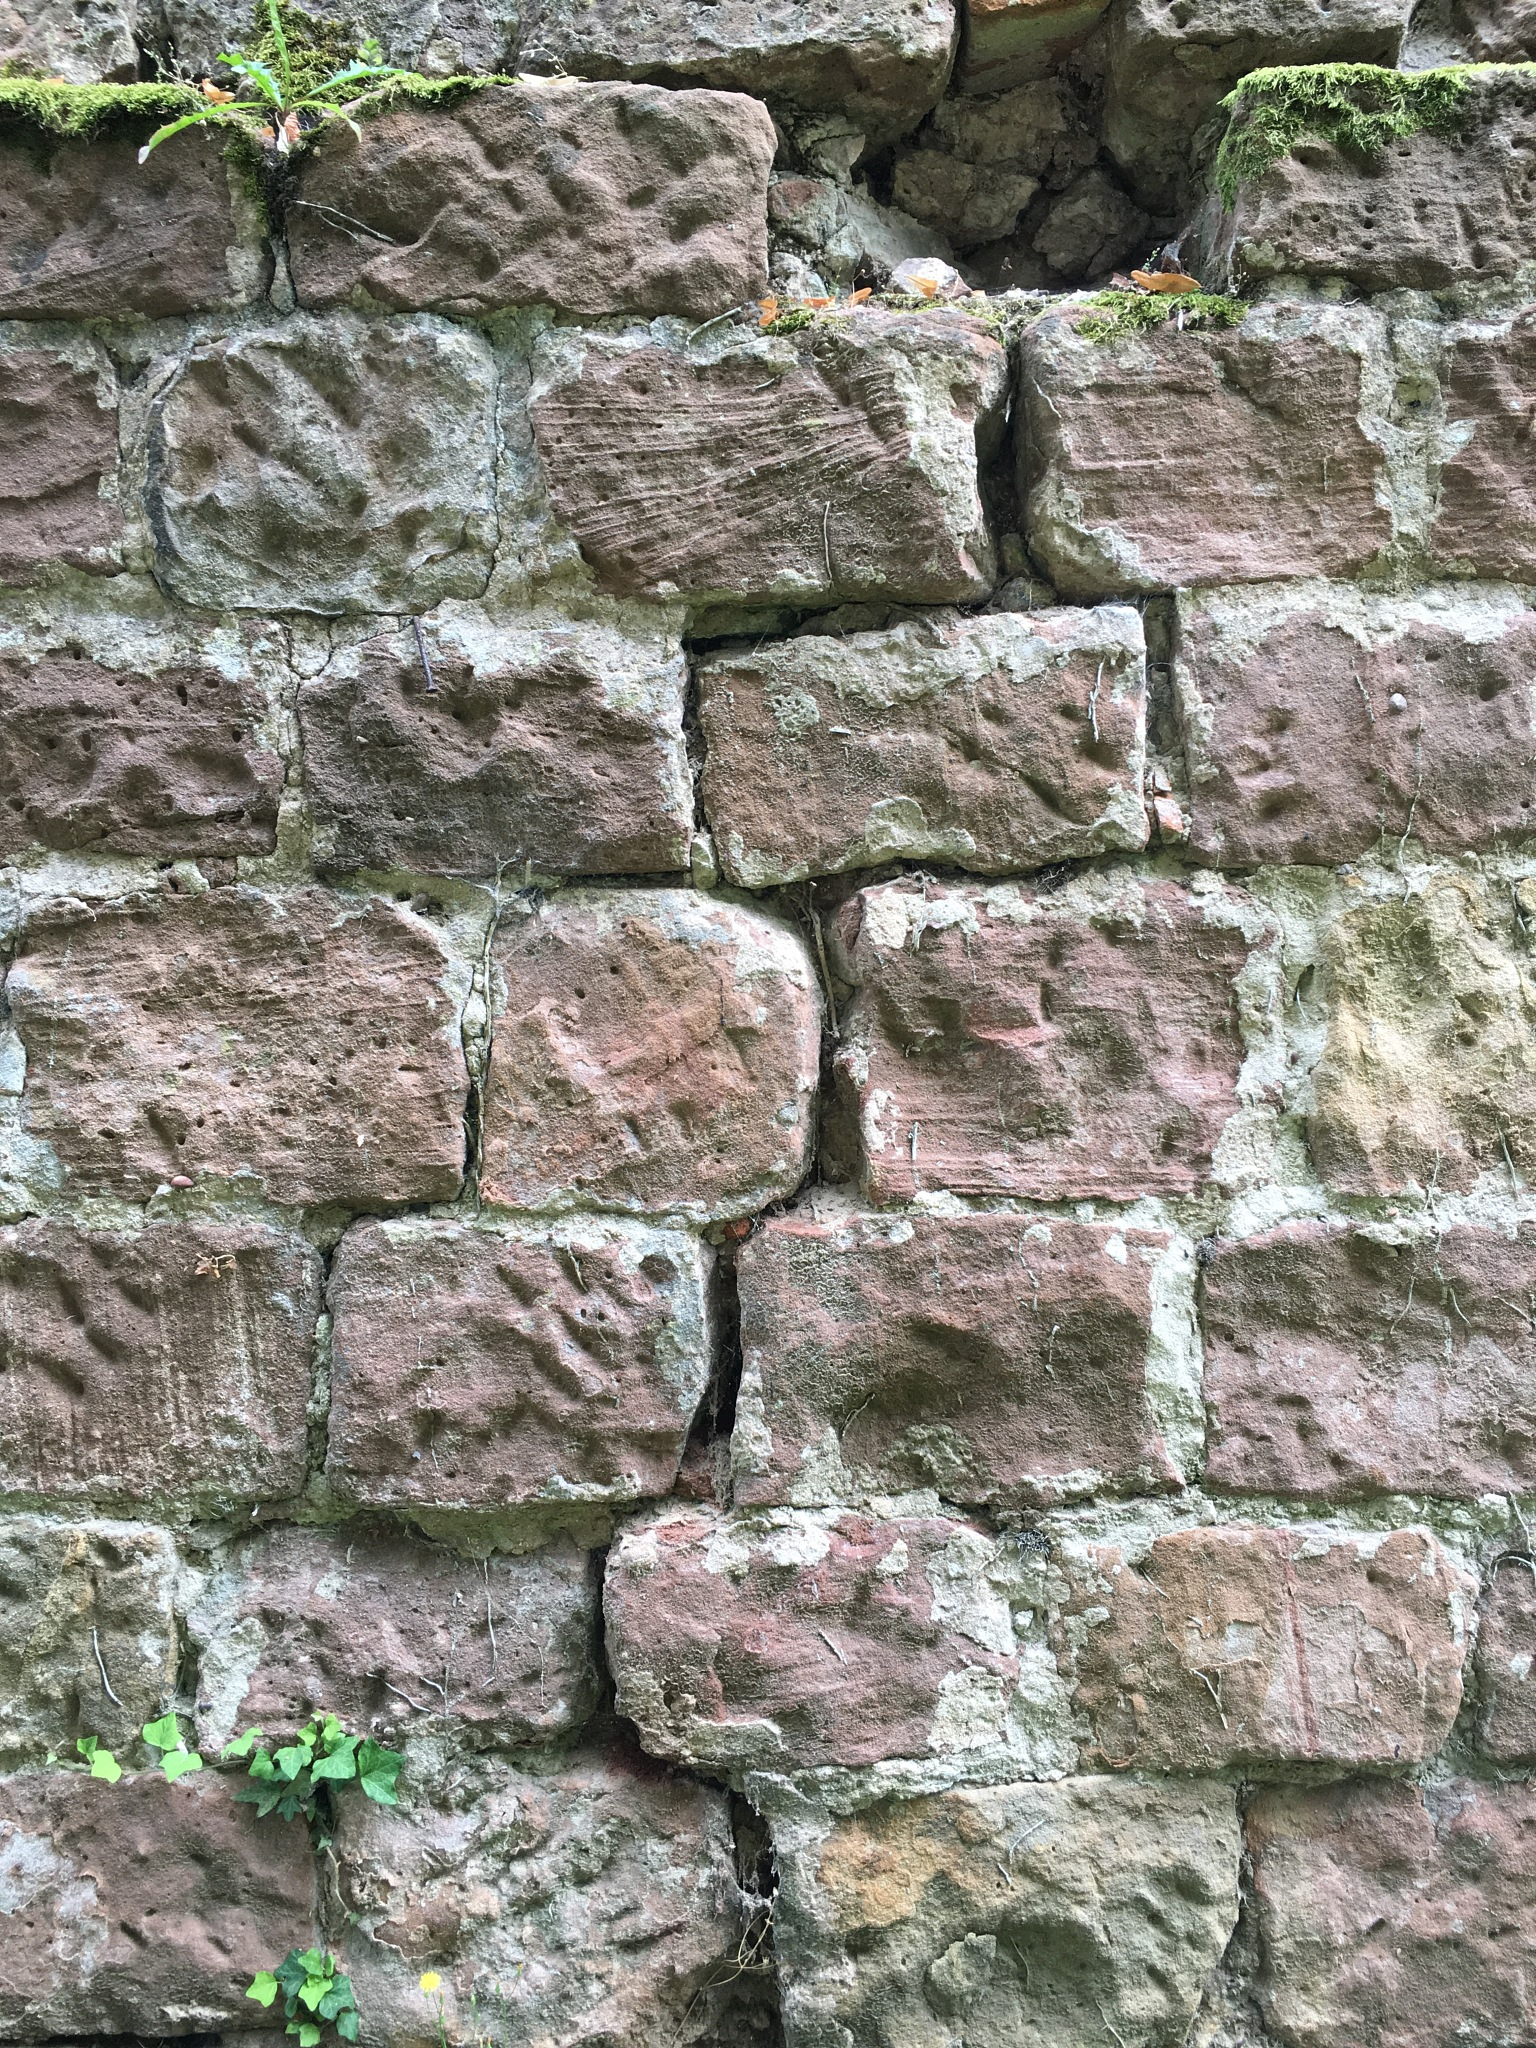 All in all it's just another crack in the wall...  by Inman